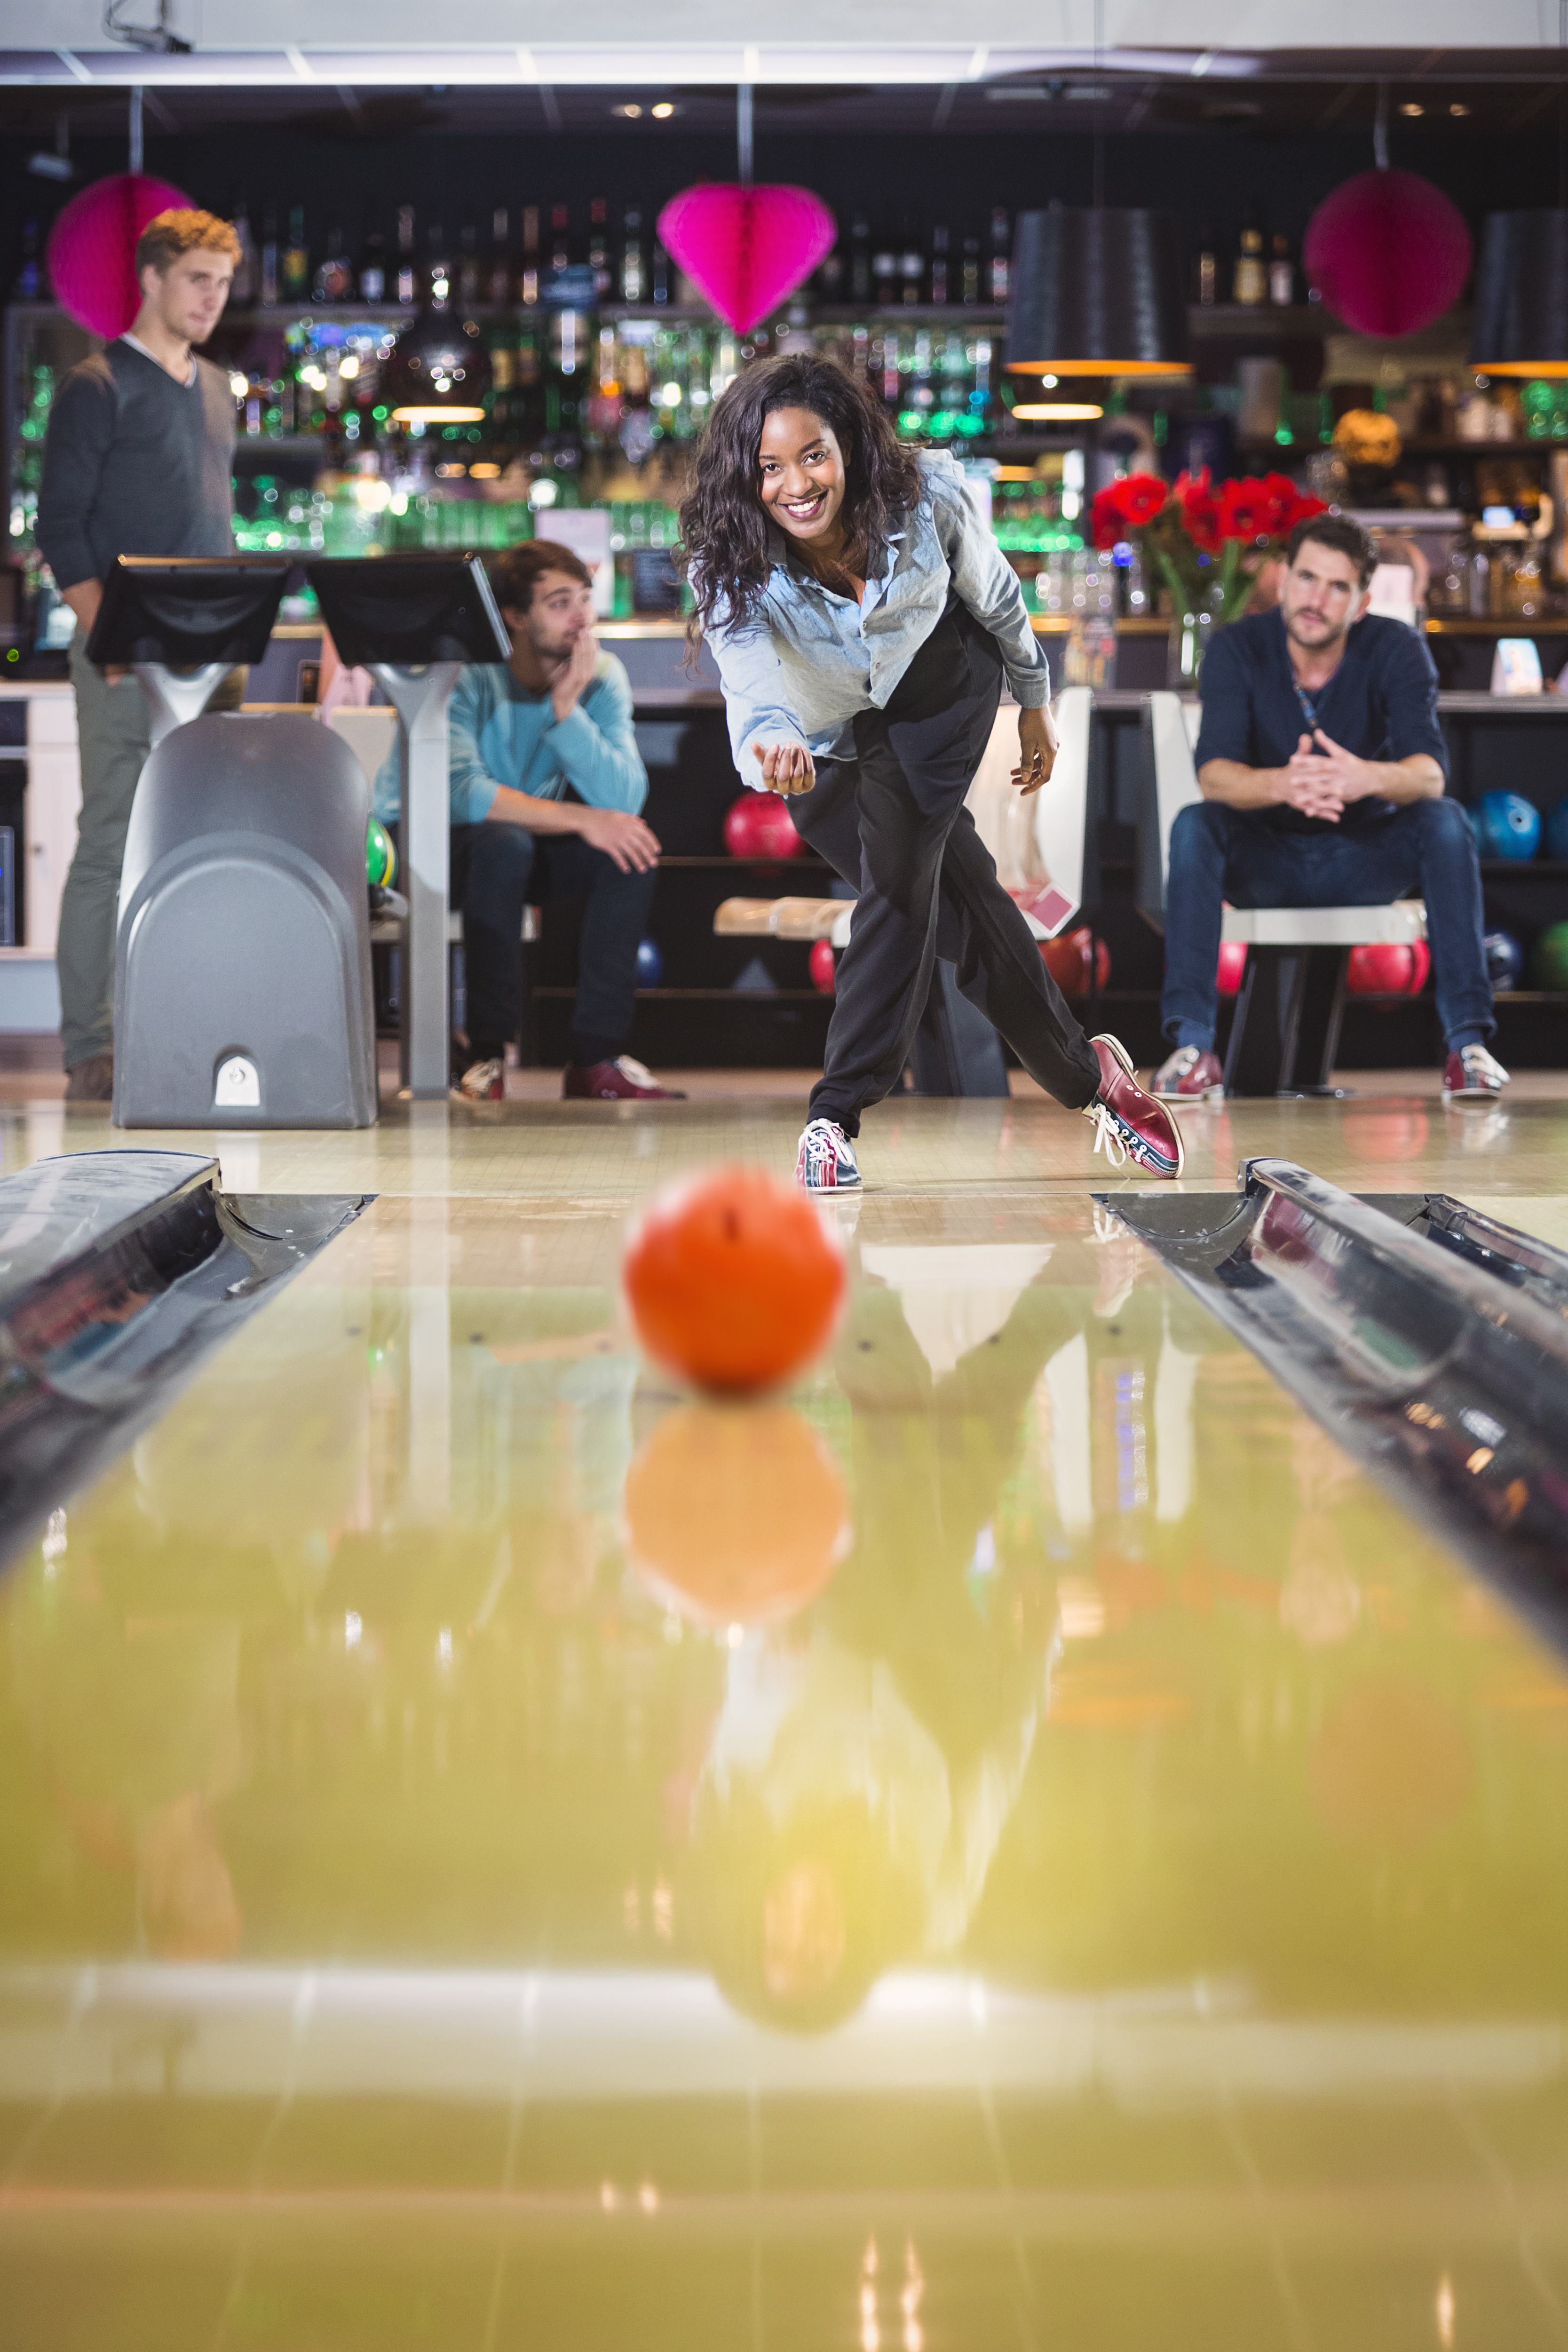 league bowling | adult leagues | adult bowling leagues | social bowling clubs | jb's on 41 | milwaukee, wi